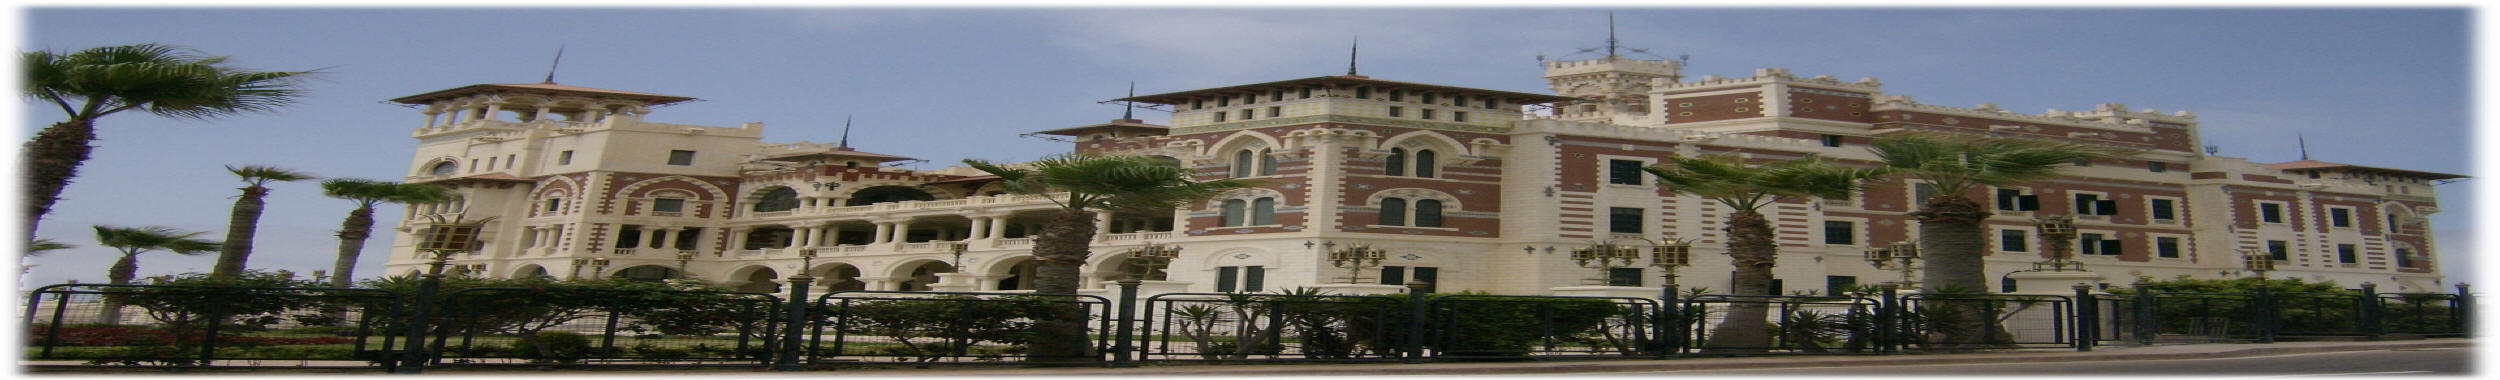 Muntaza Palace. Ras el Tin. Alexandria, Egypt. Copy-Right InterConsult21